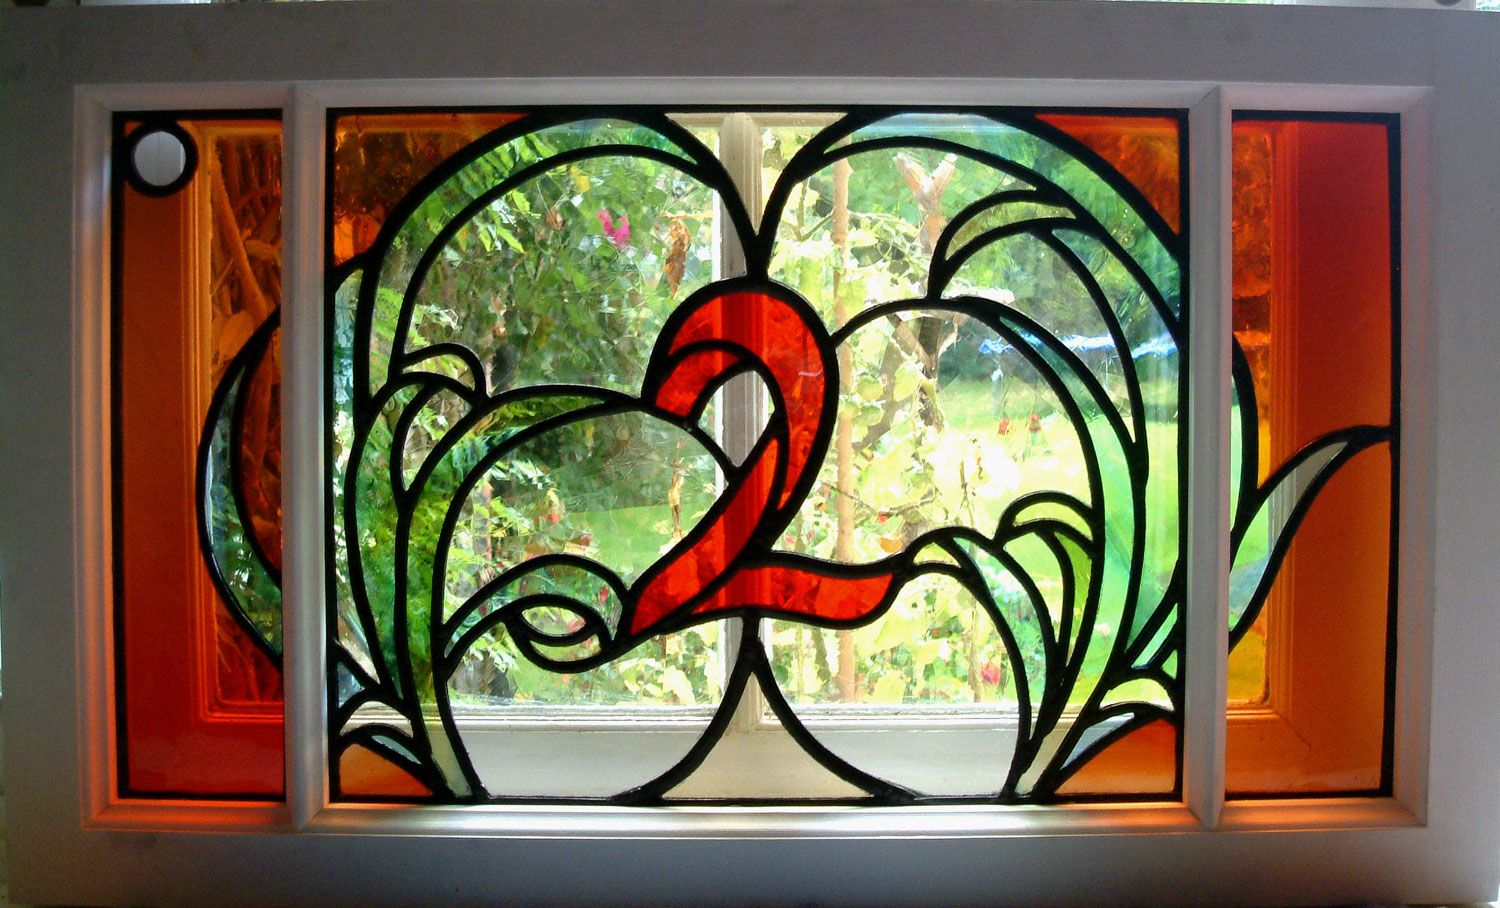 Carol arnold stained glass and design image of window stained